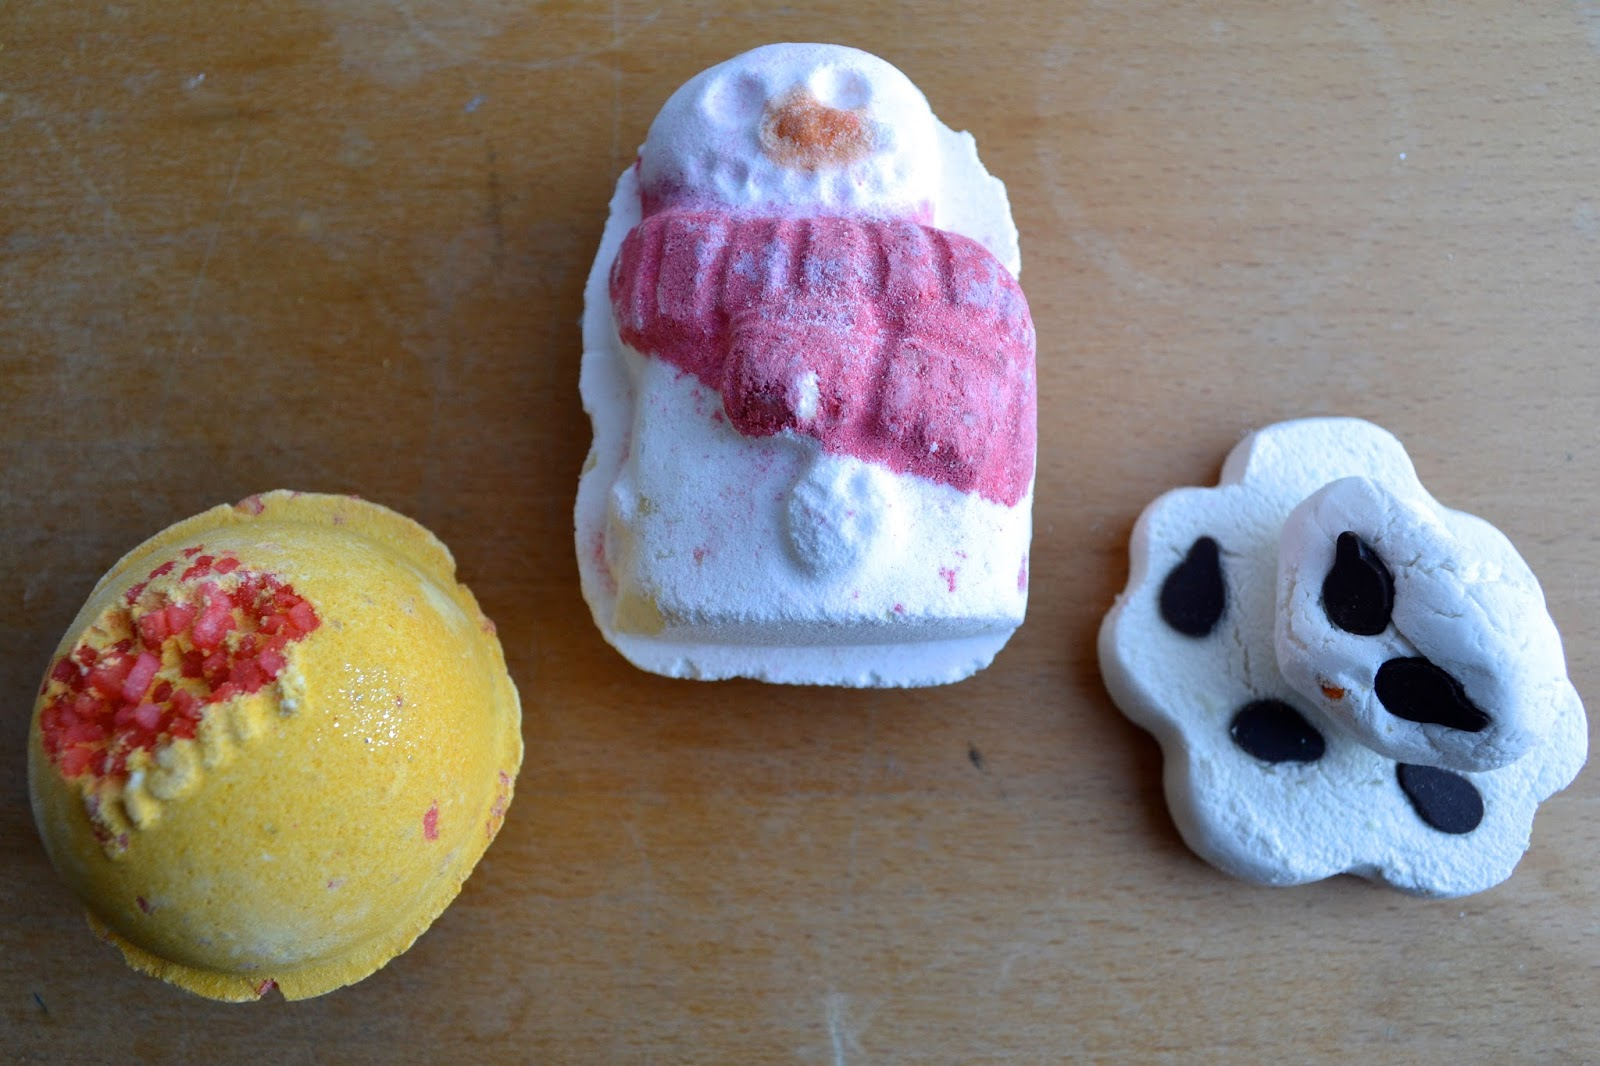 Cinders Bath Ballistic, Snowman Bath Ballistic and Melting Snowman Bath Melt.